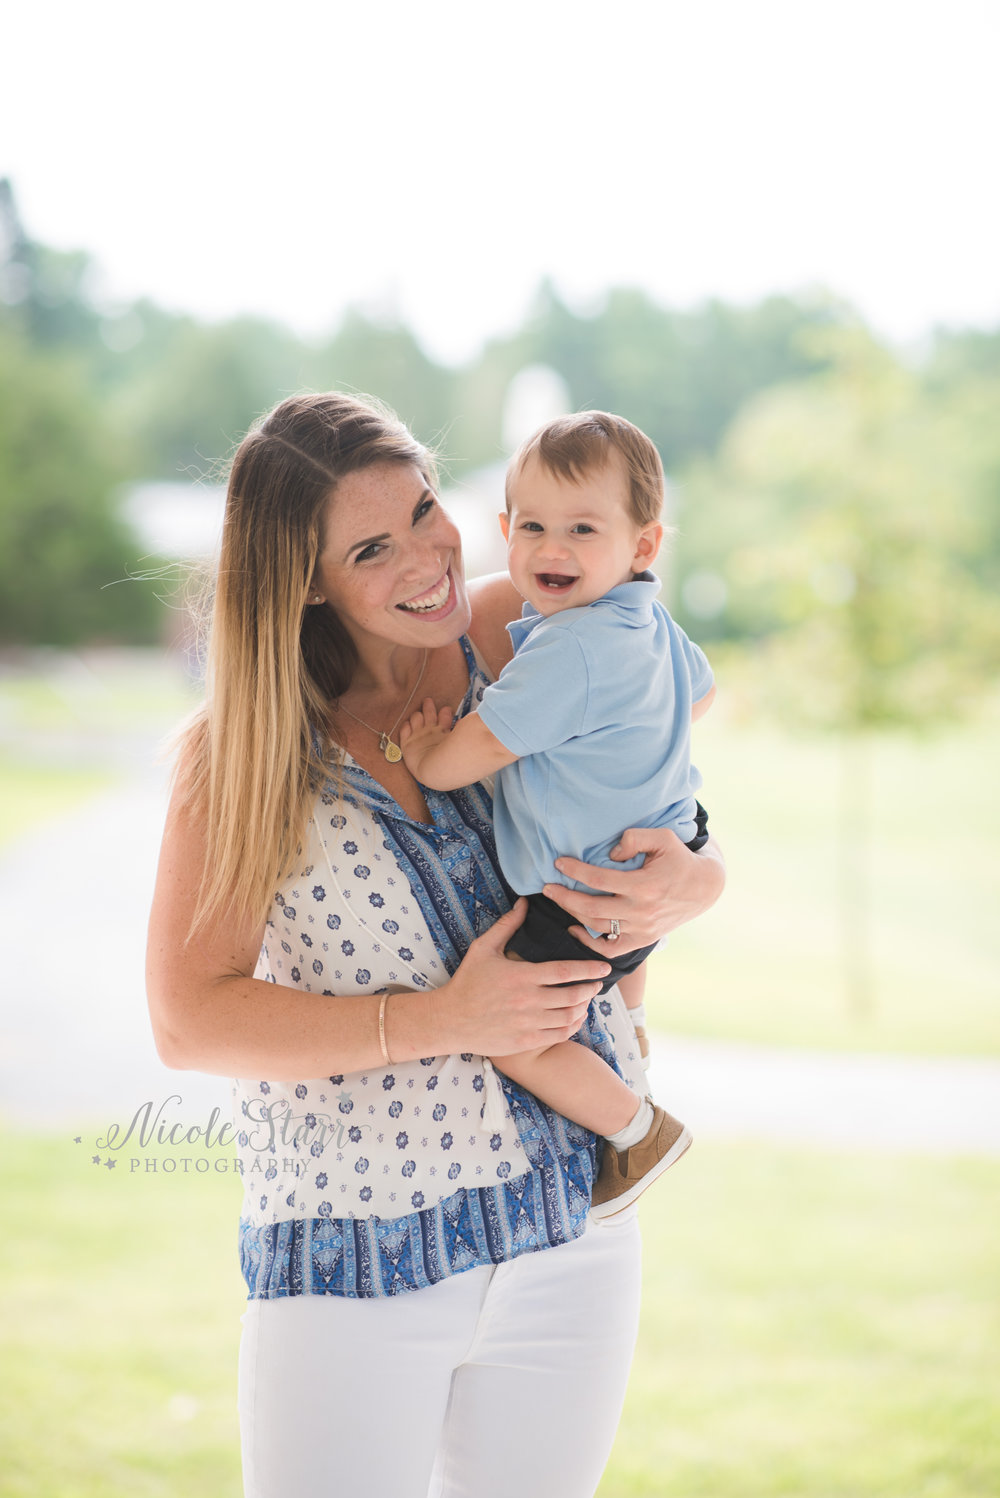 Nicole Starr Photography | Saratoga Spa State Park Photographer | Saratoga Spa State Park portraits | Hall of Springs Portraits | SPAC Portraits|  Saratoga Performing Arts Center Portraits | Roosevelt Baths Portraits